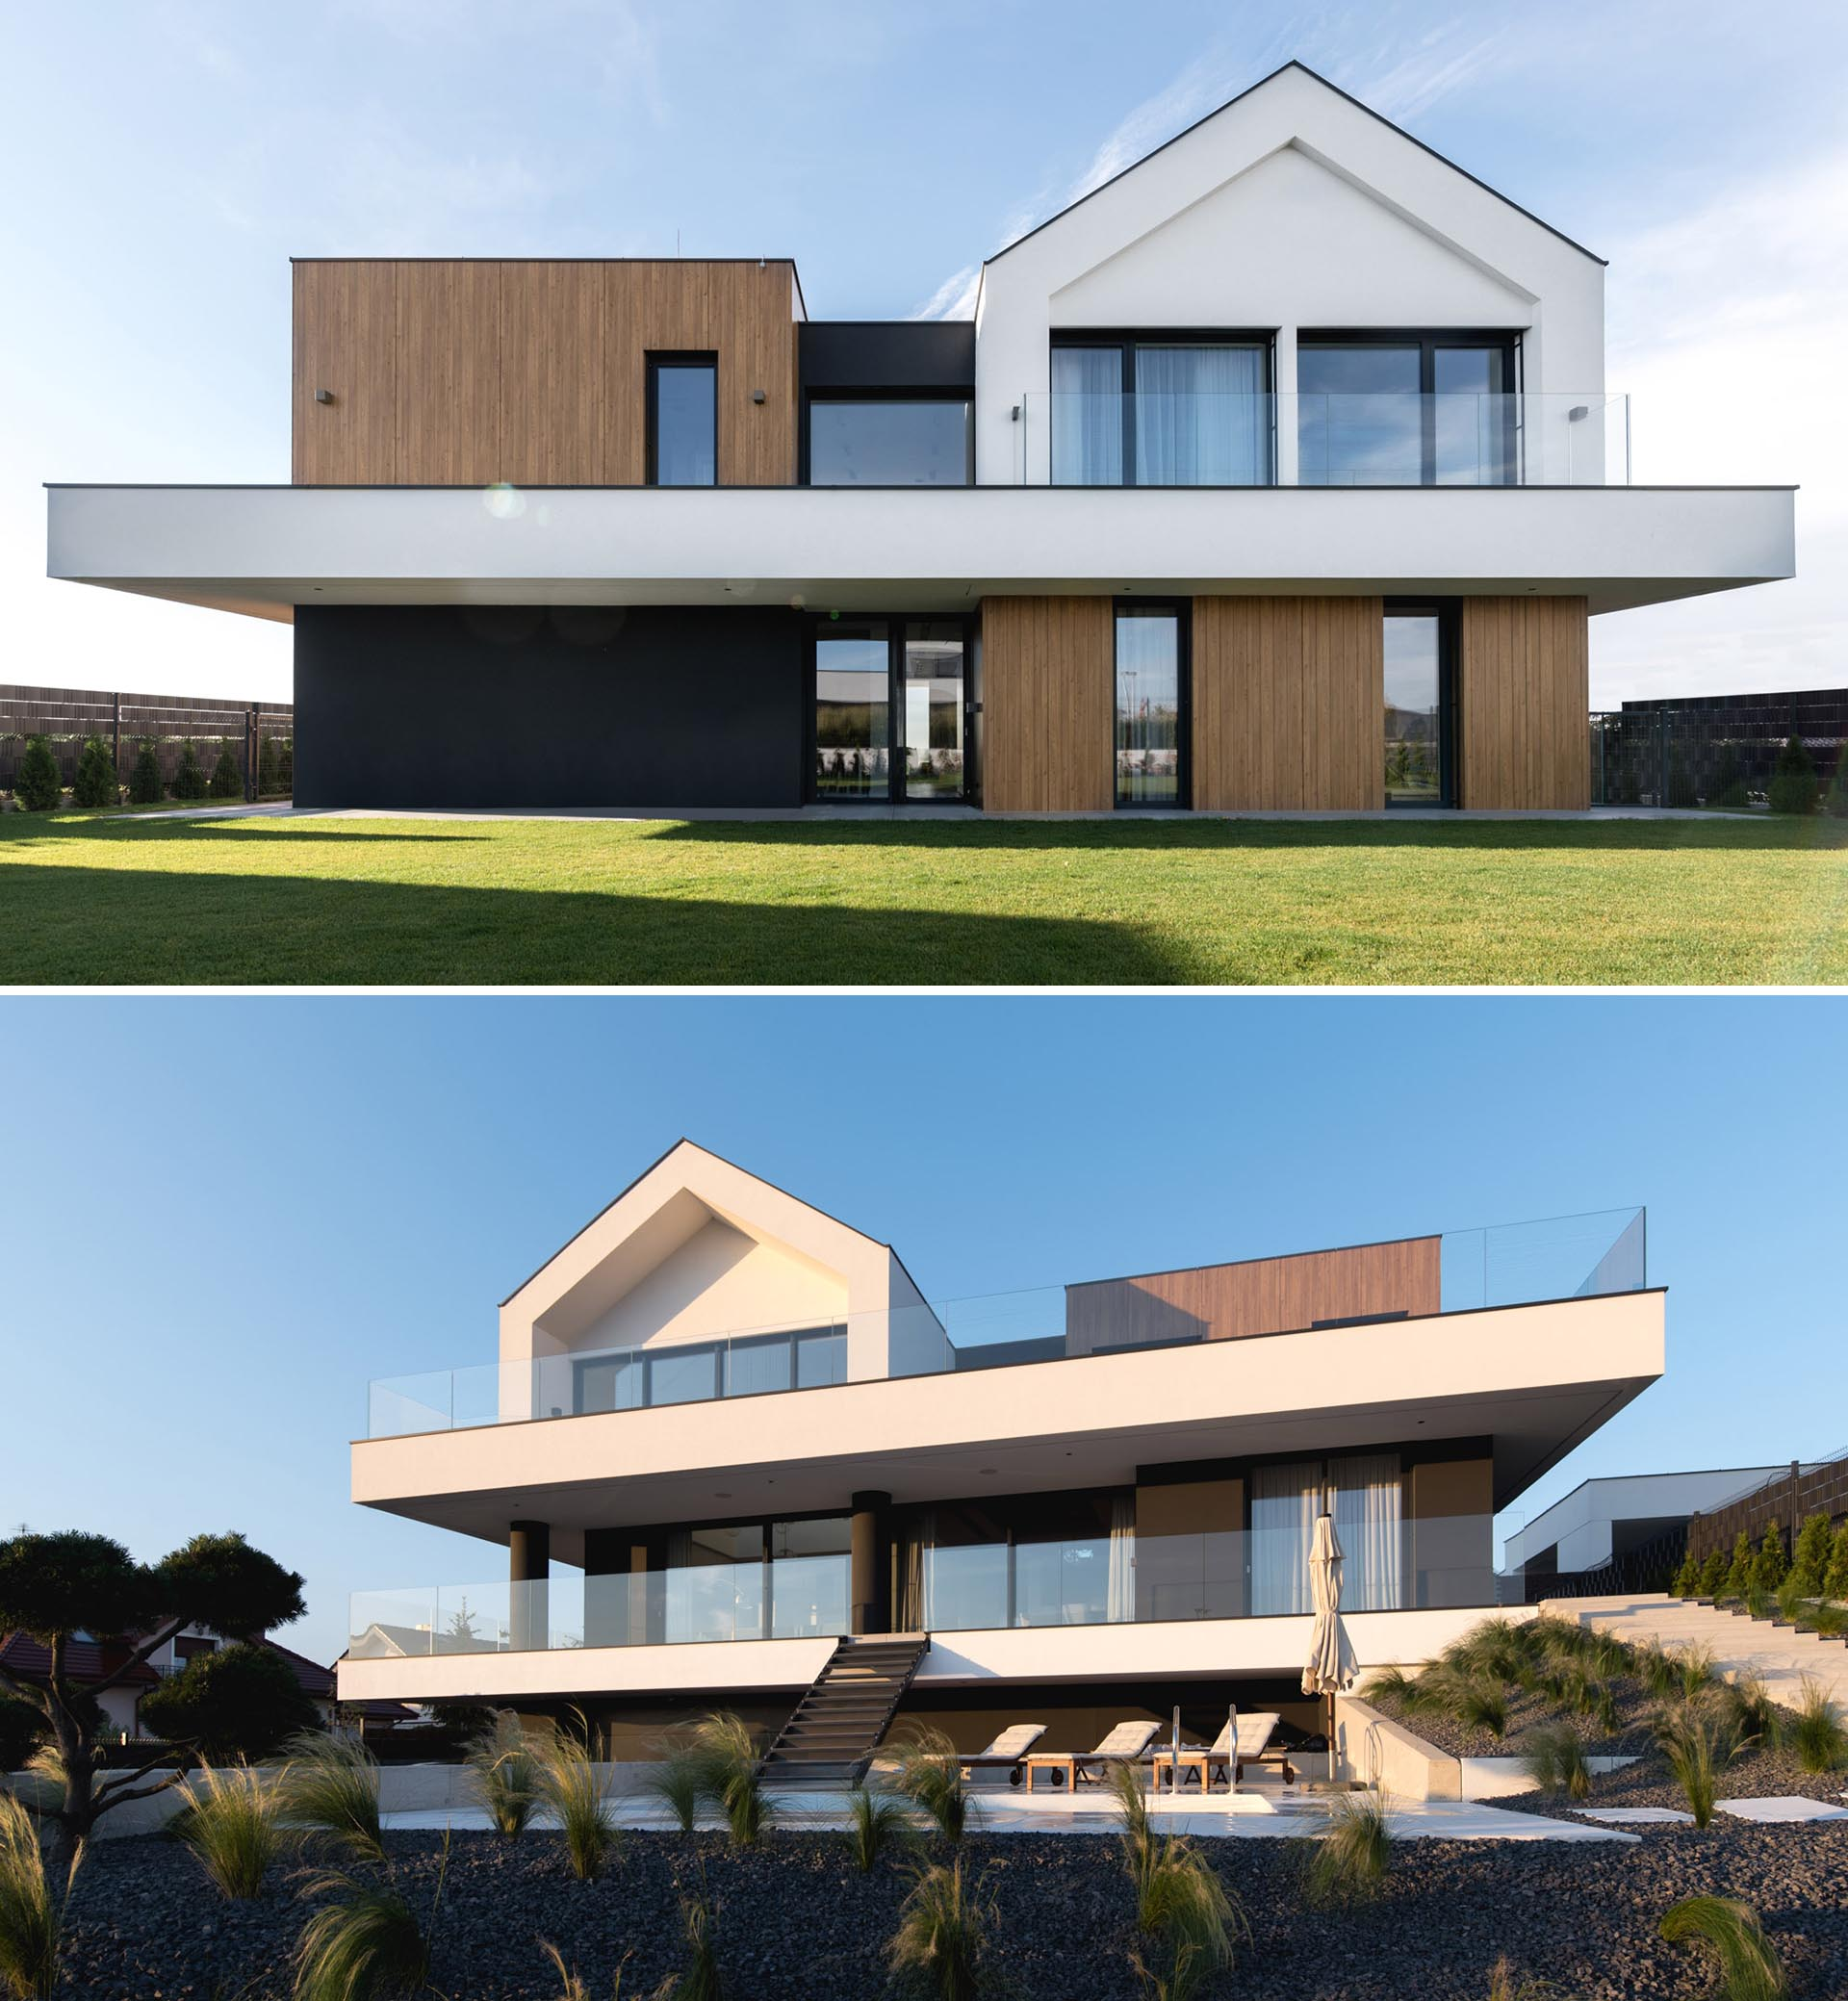 A modern house with a black and white exterior with wood accents.